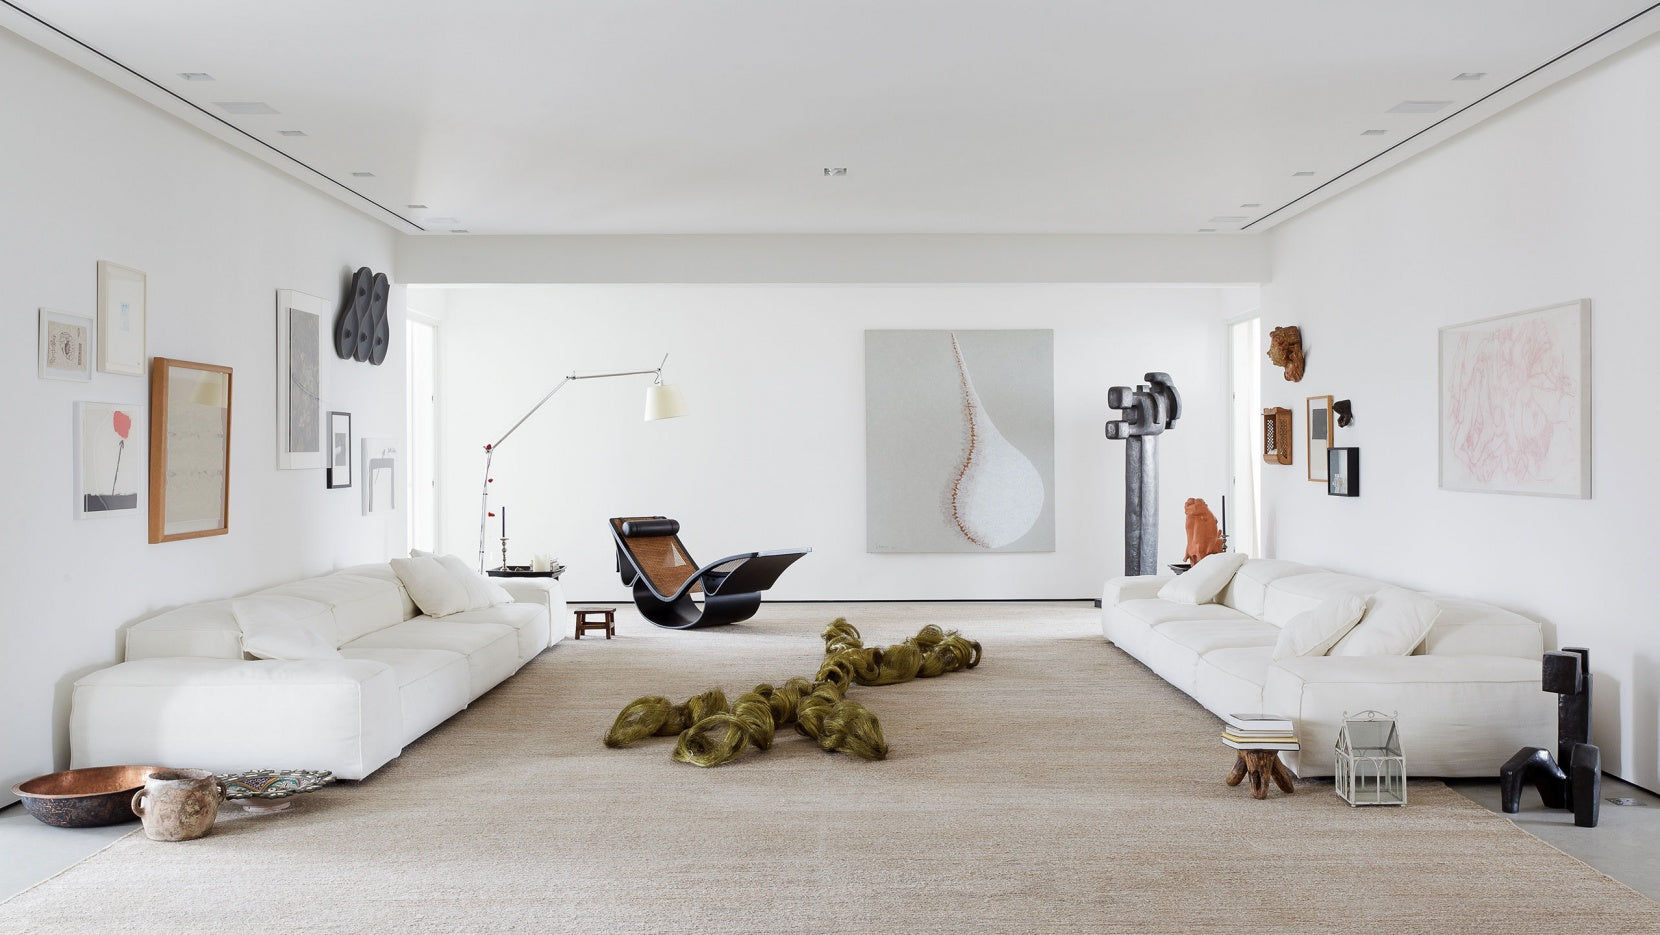 white living rooms pictures. Get ready to lighten up  white hot living room inspiration awaits you below courtesy of our Pinterest board Why We re All About White Living Rooms